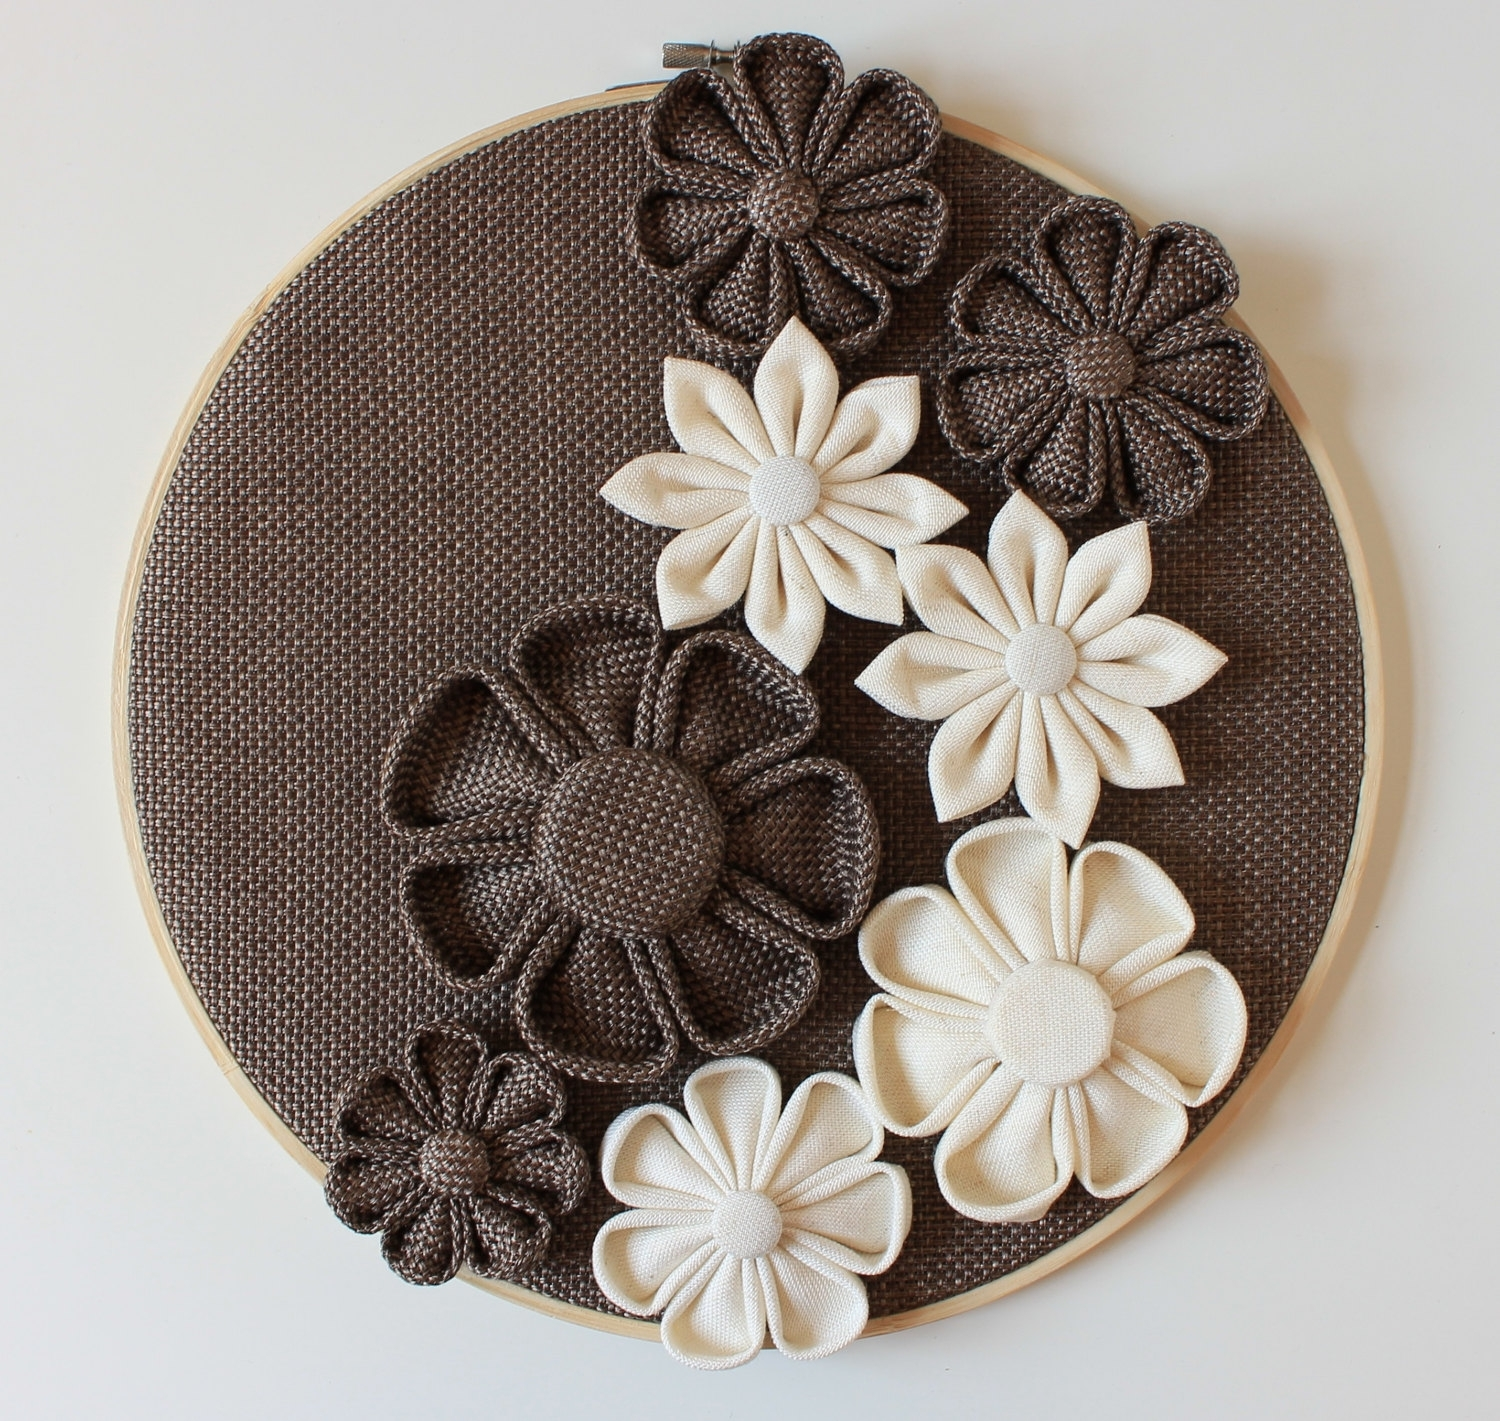 3d Wall Decor Wall Flowers Home Decor Wallneschdecoration Throughout Recent Floral Fabric Wall Art (Gallery 9 of 15)